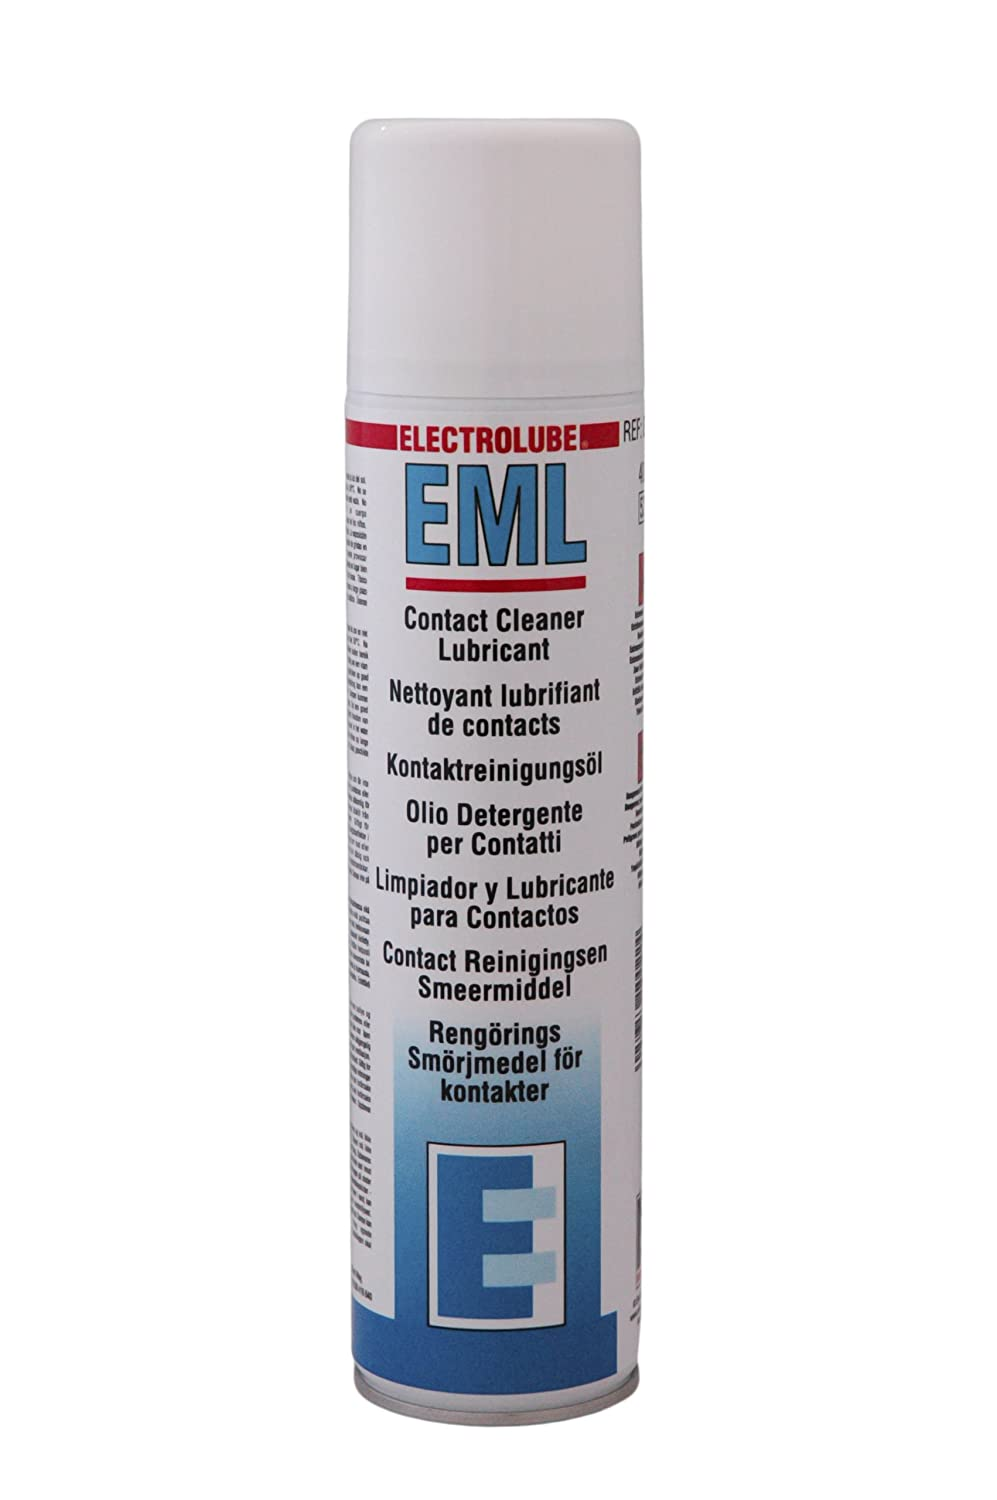 Electrolube Contact Cleaner Lubricant HK Wentworth Limited